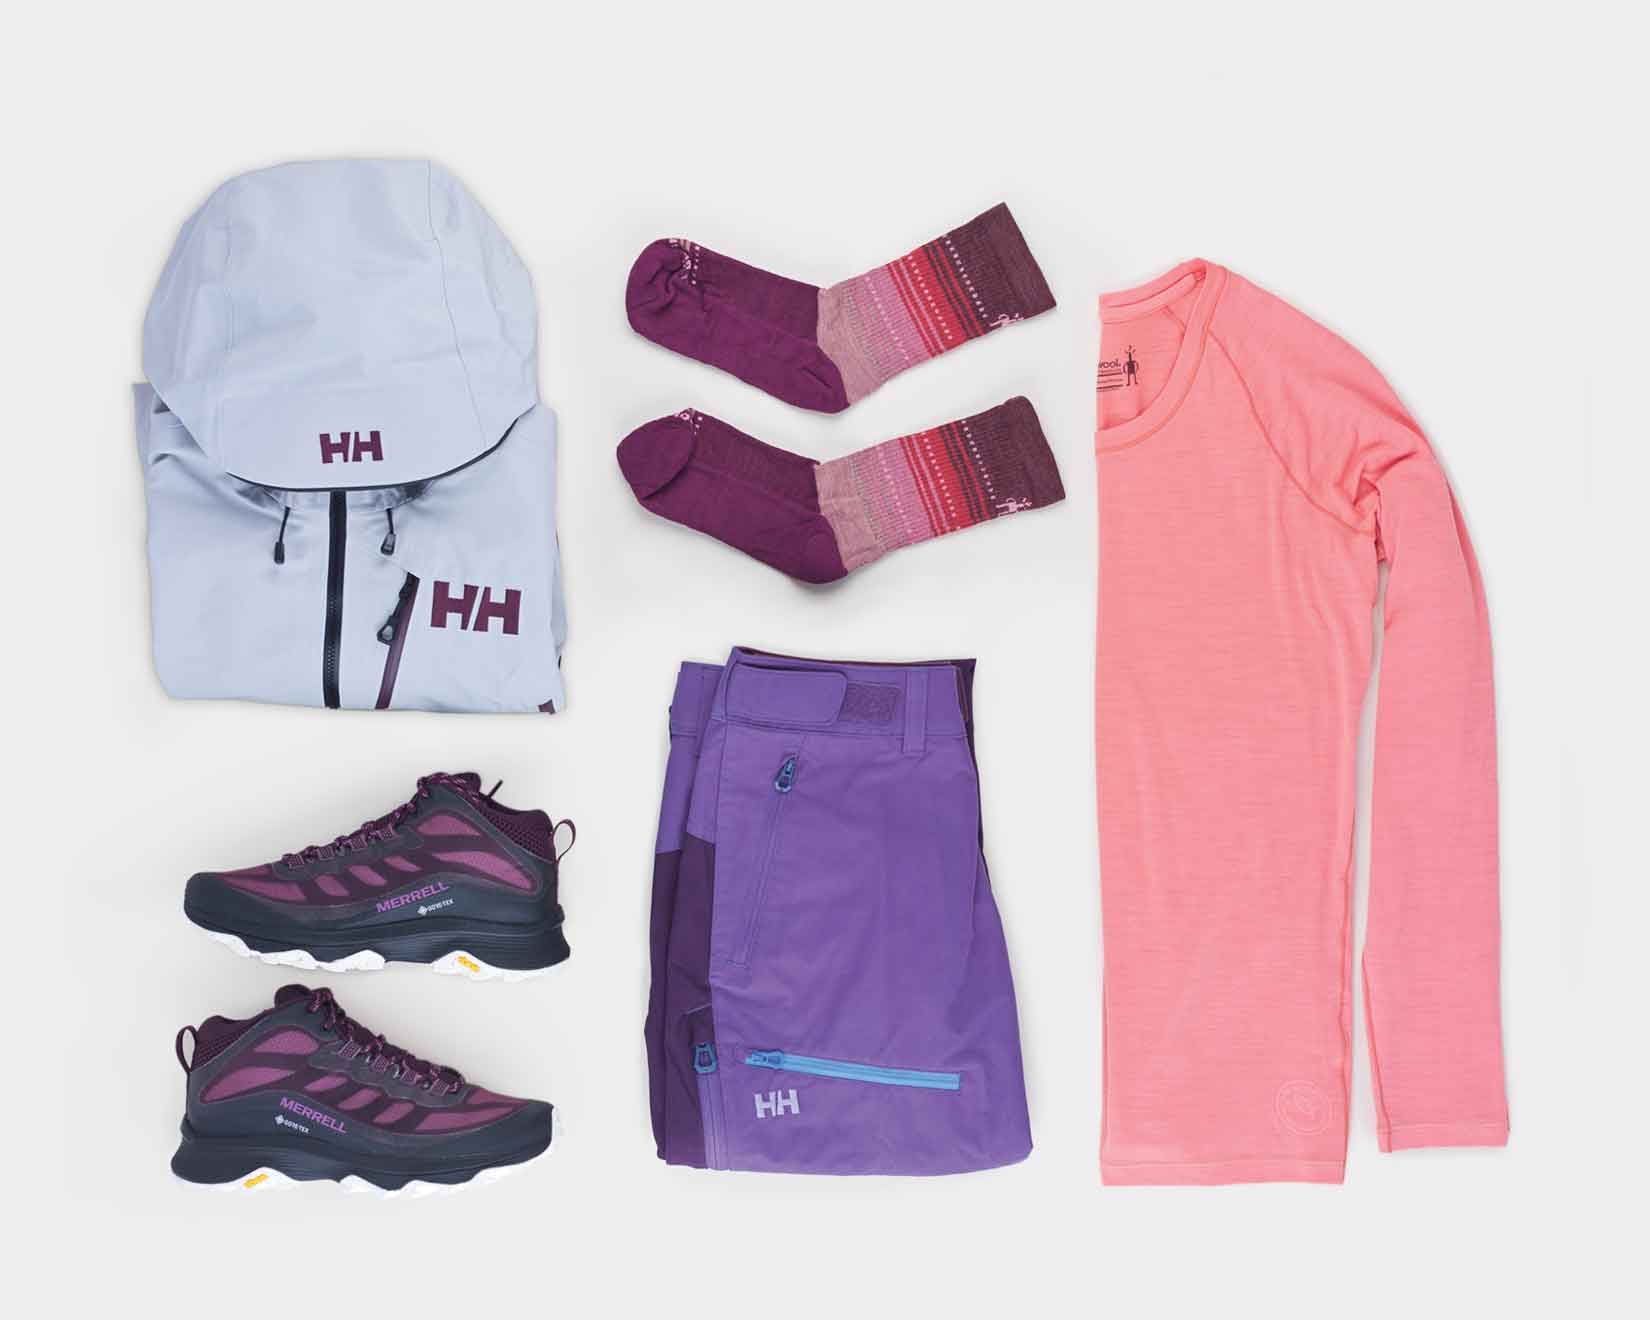 Mountain Style: Hiking gear to go the extra mile